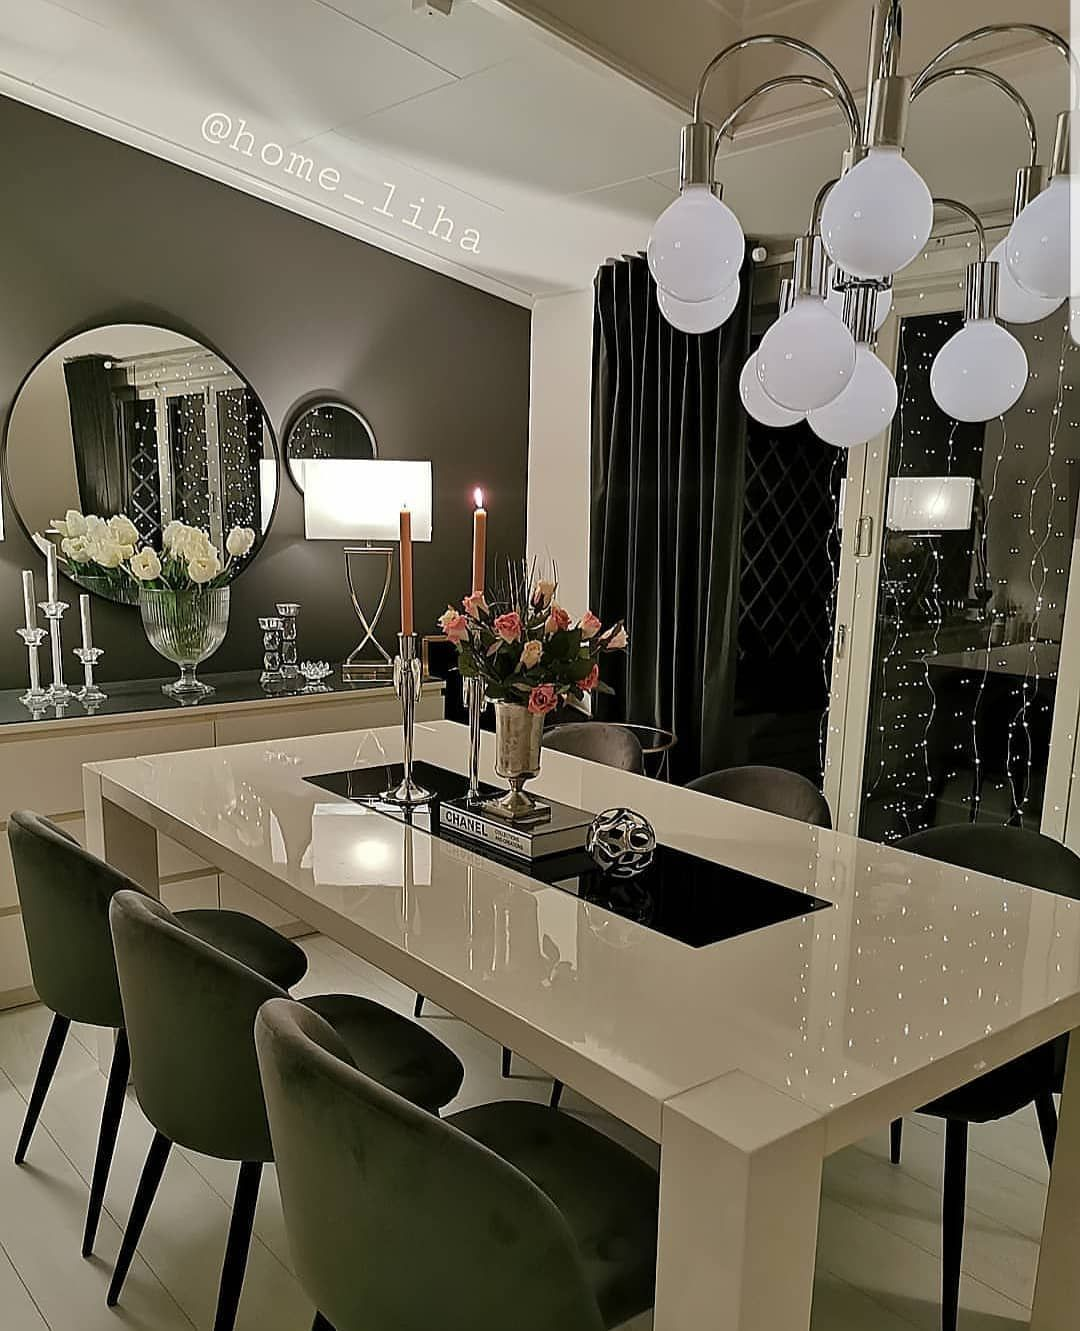 Online Furniture Stores How To Evaluate For Buying Retail Furniture Elegant Dining Room Dining Room Table Decor Luxury Dining Room